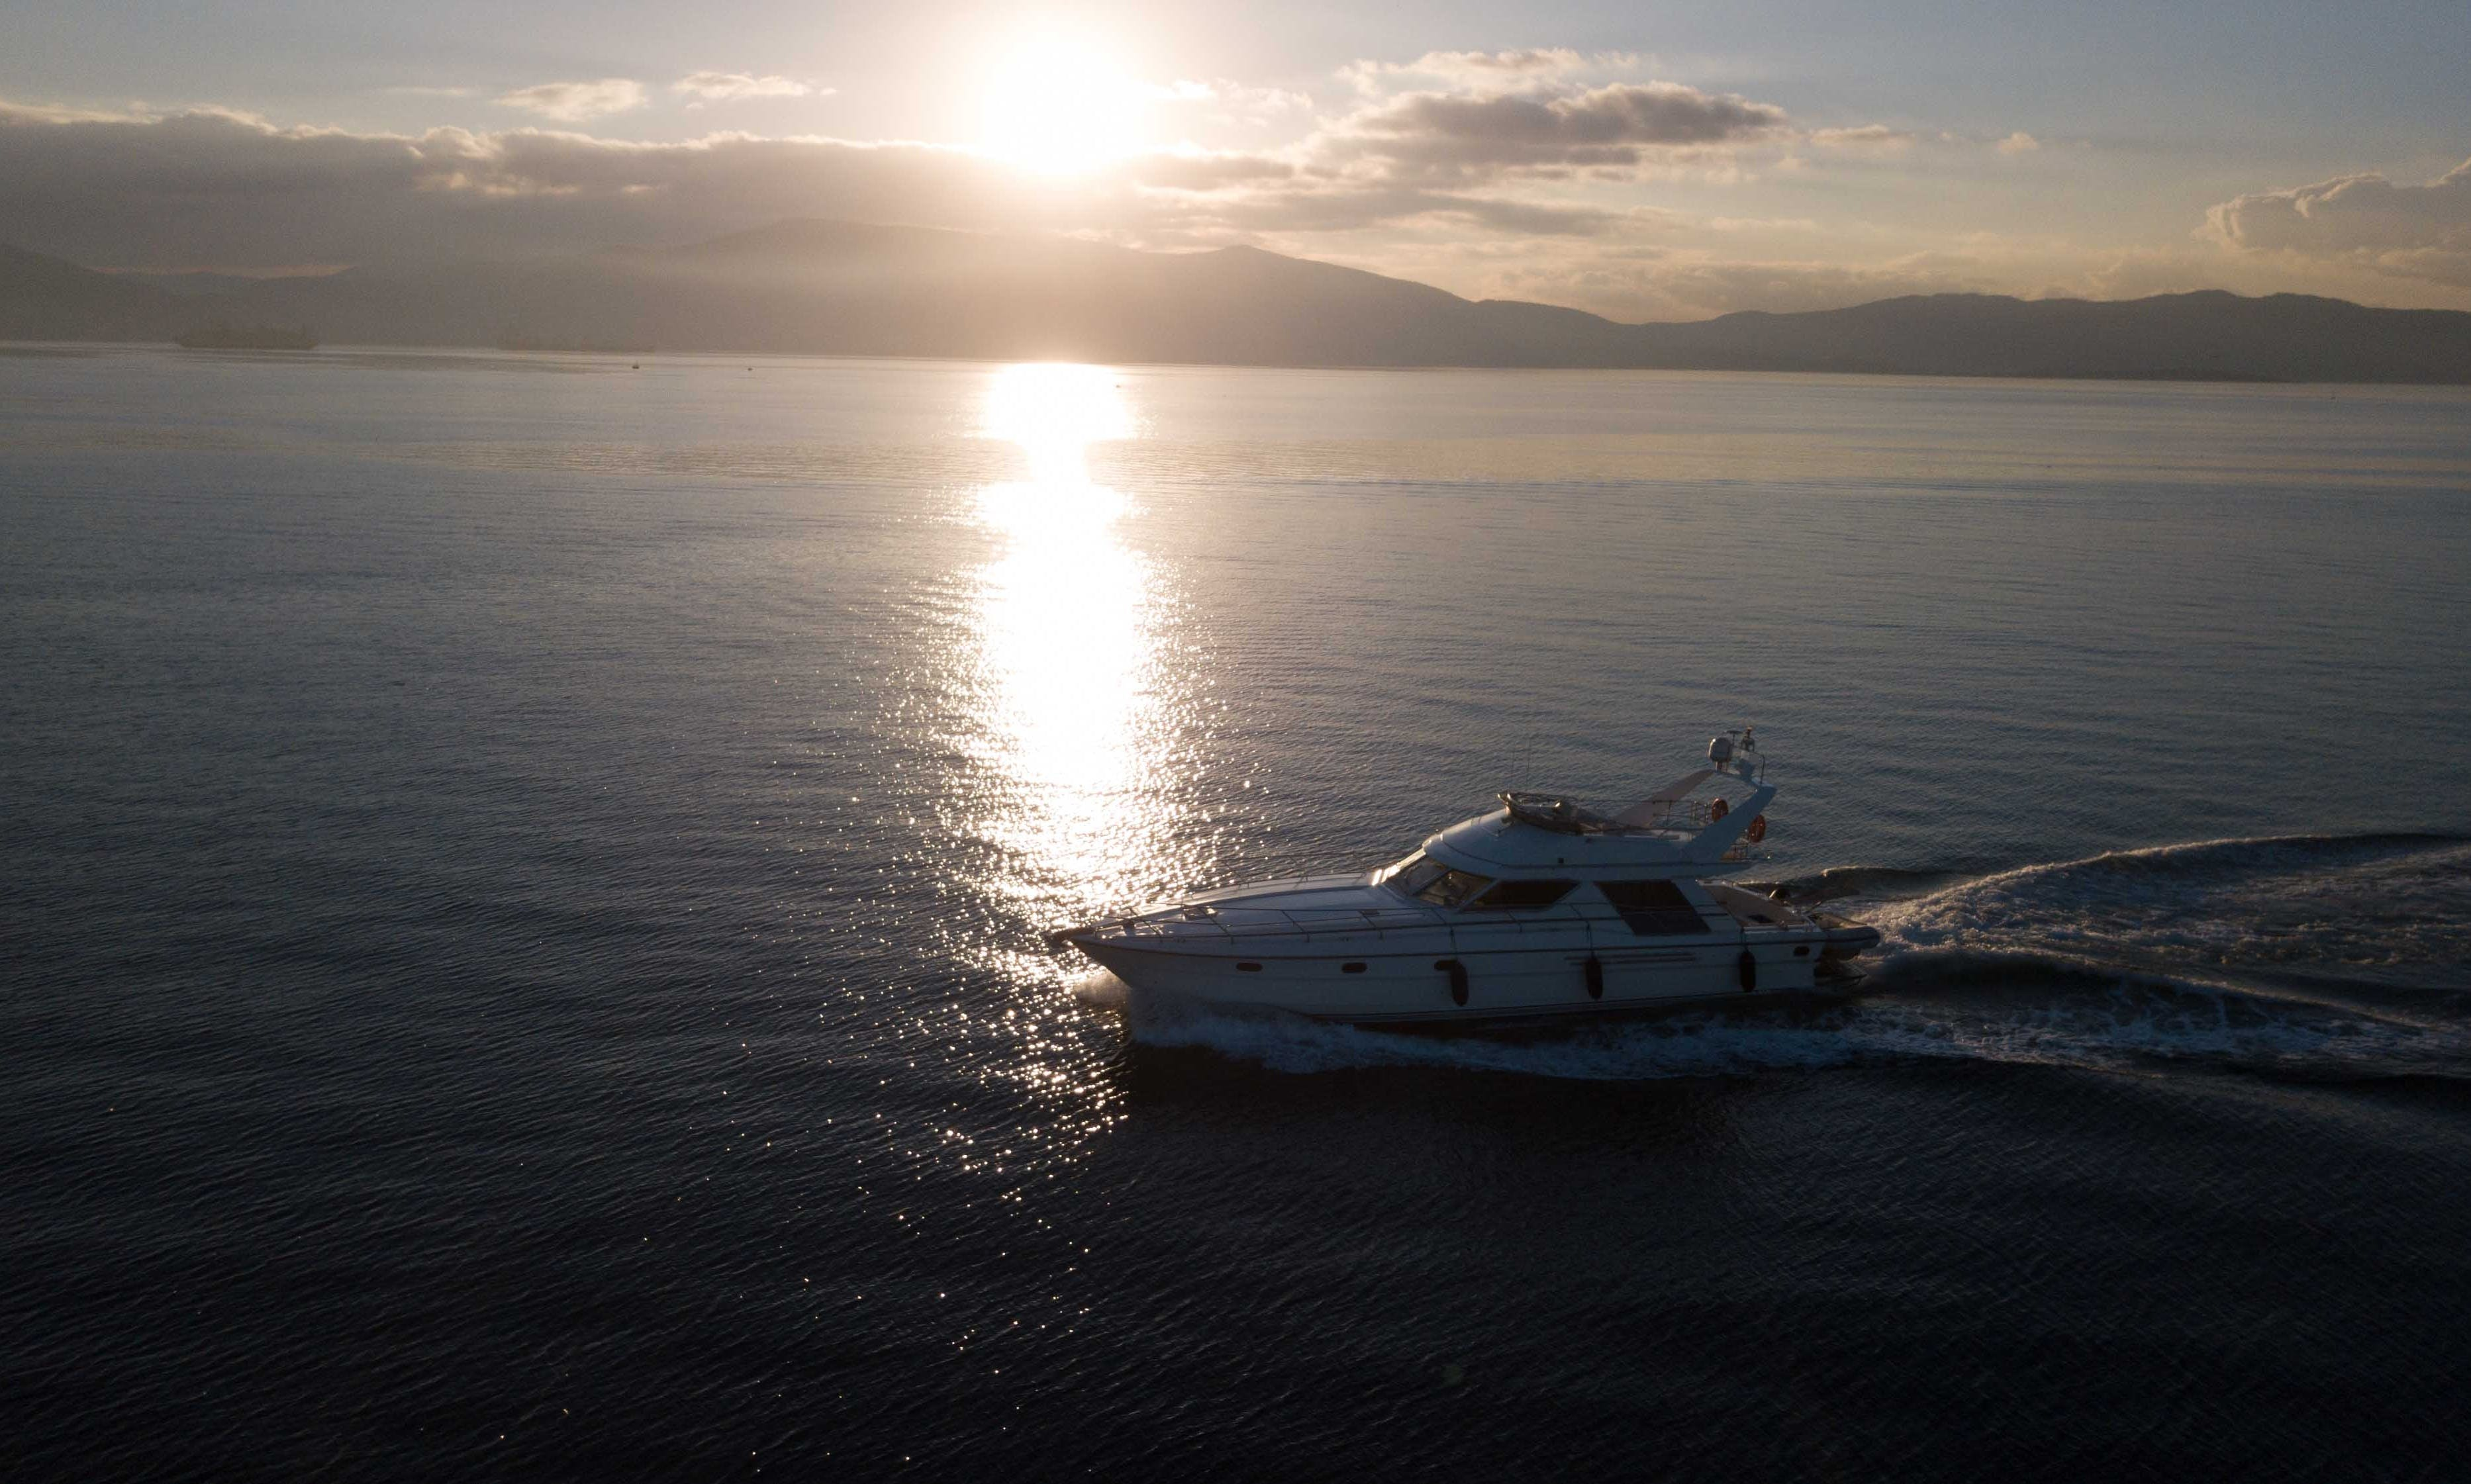 Motor Yacht rental in Alimos